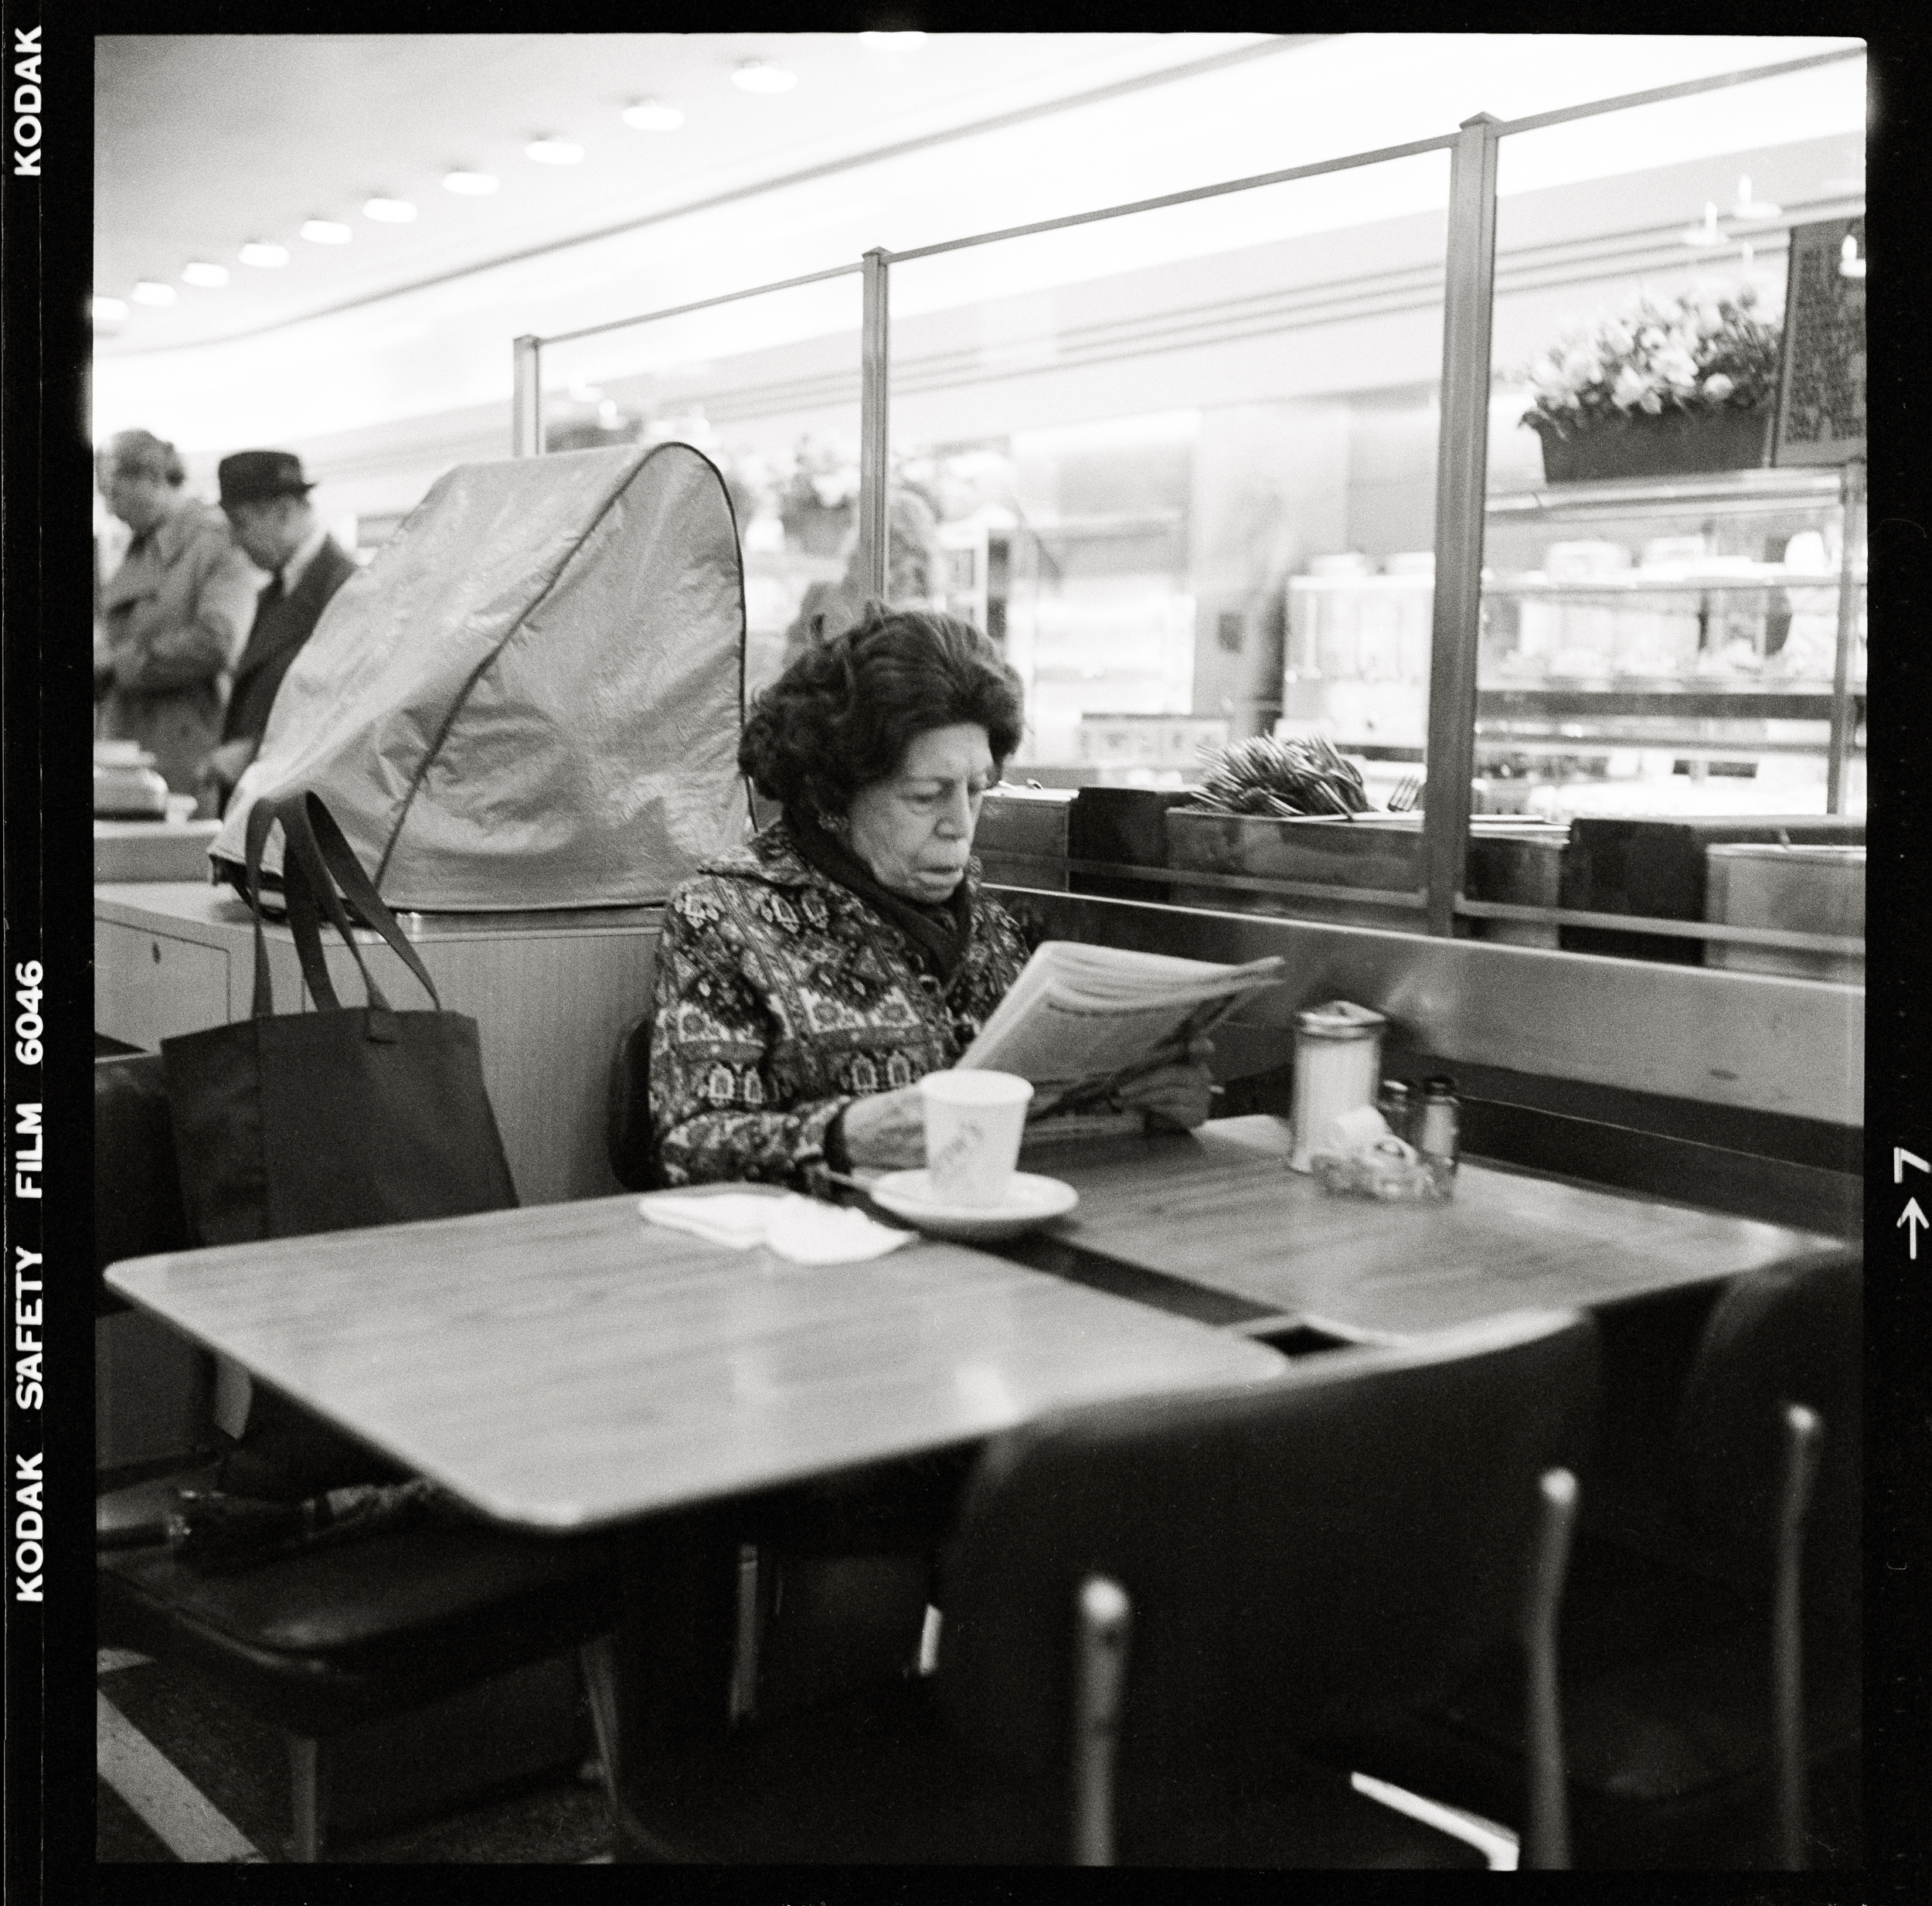 CafeteriaPortraits 06.jpg